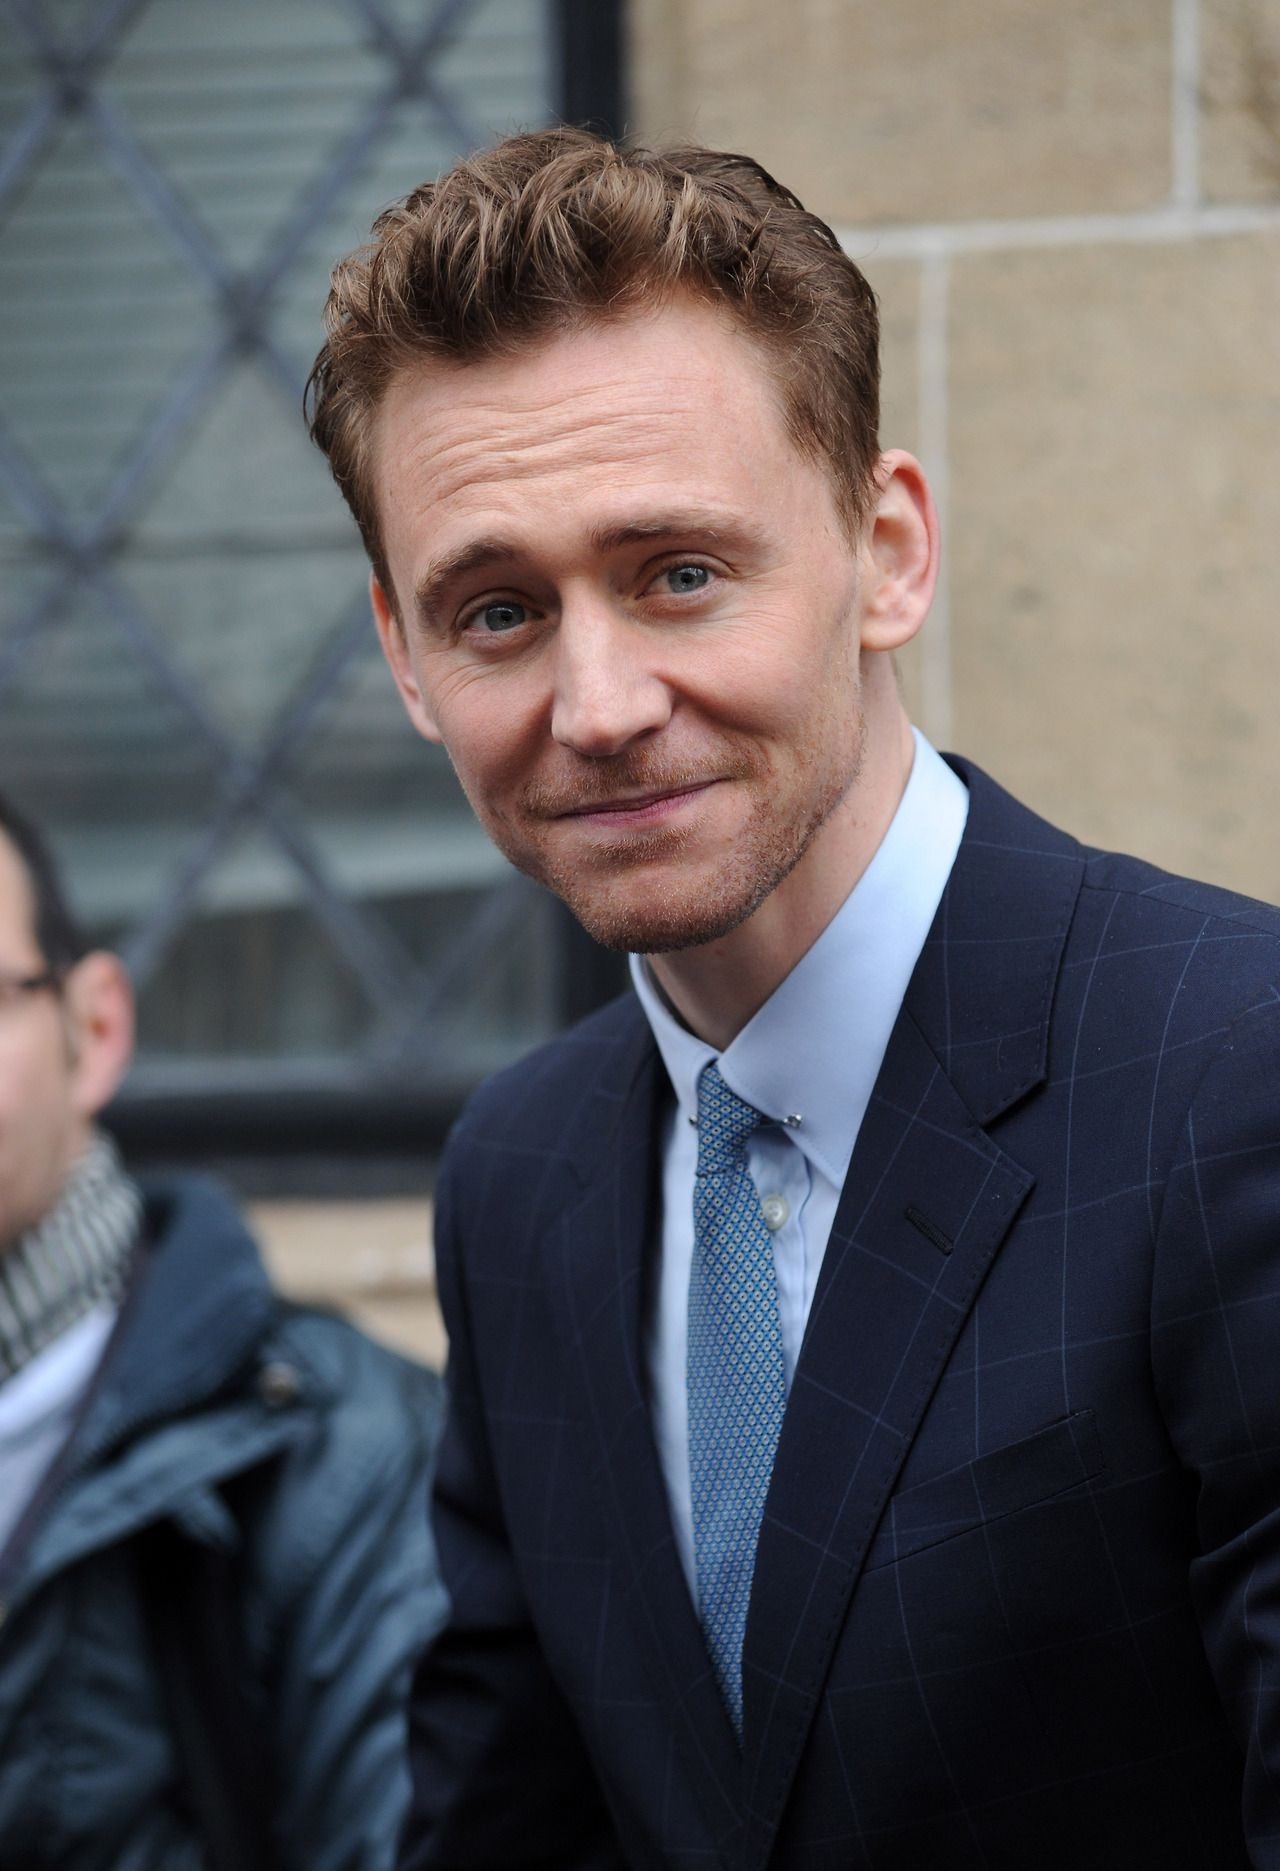 Tom Hiddleston at ITV Studios for This Morning on April 11, 2013